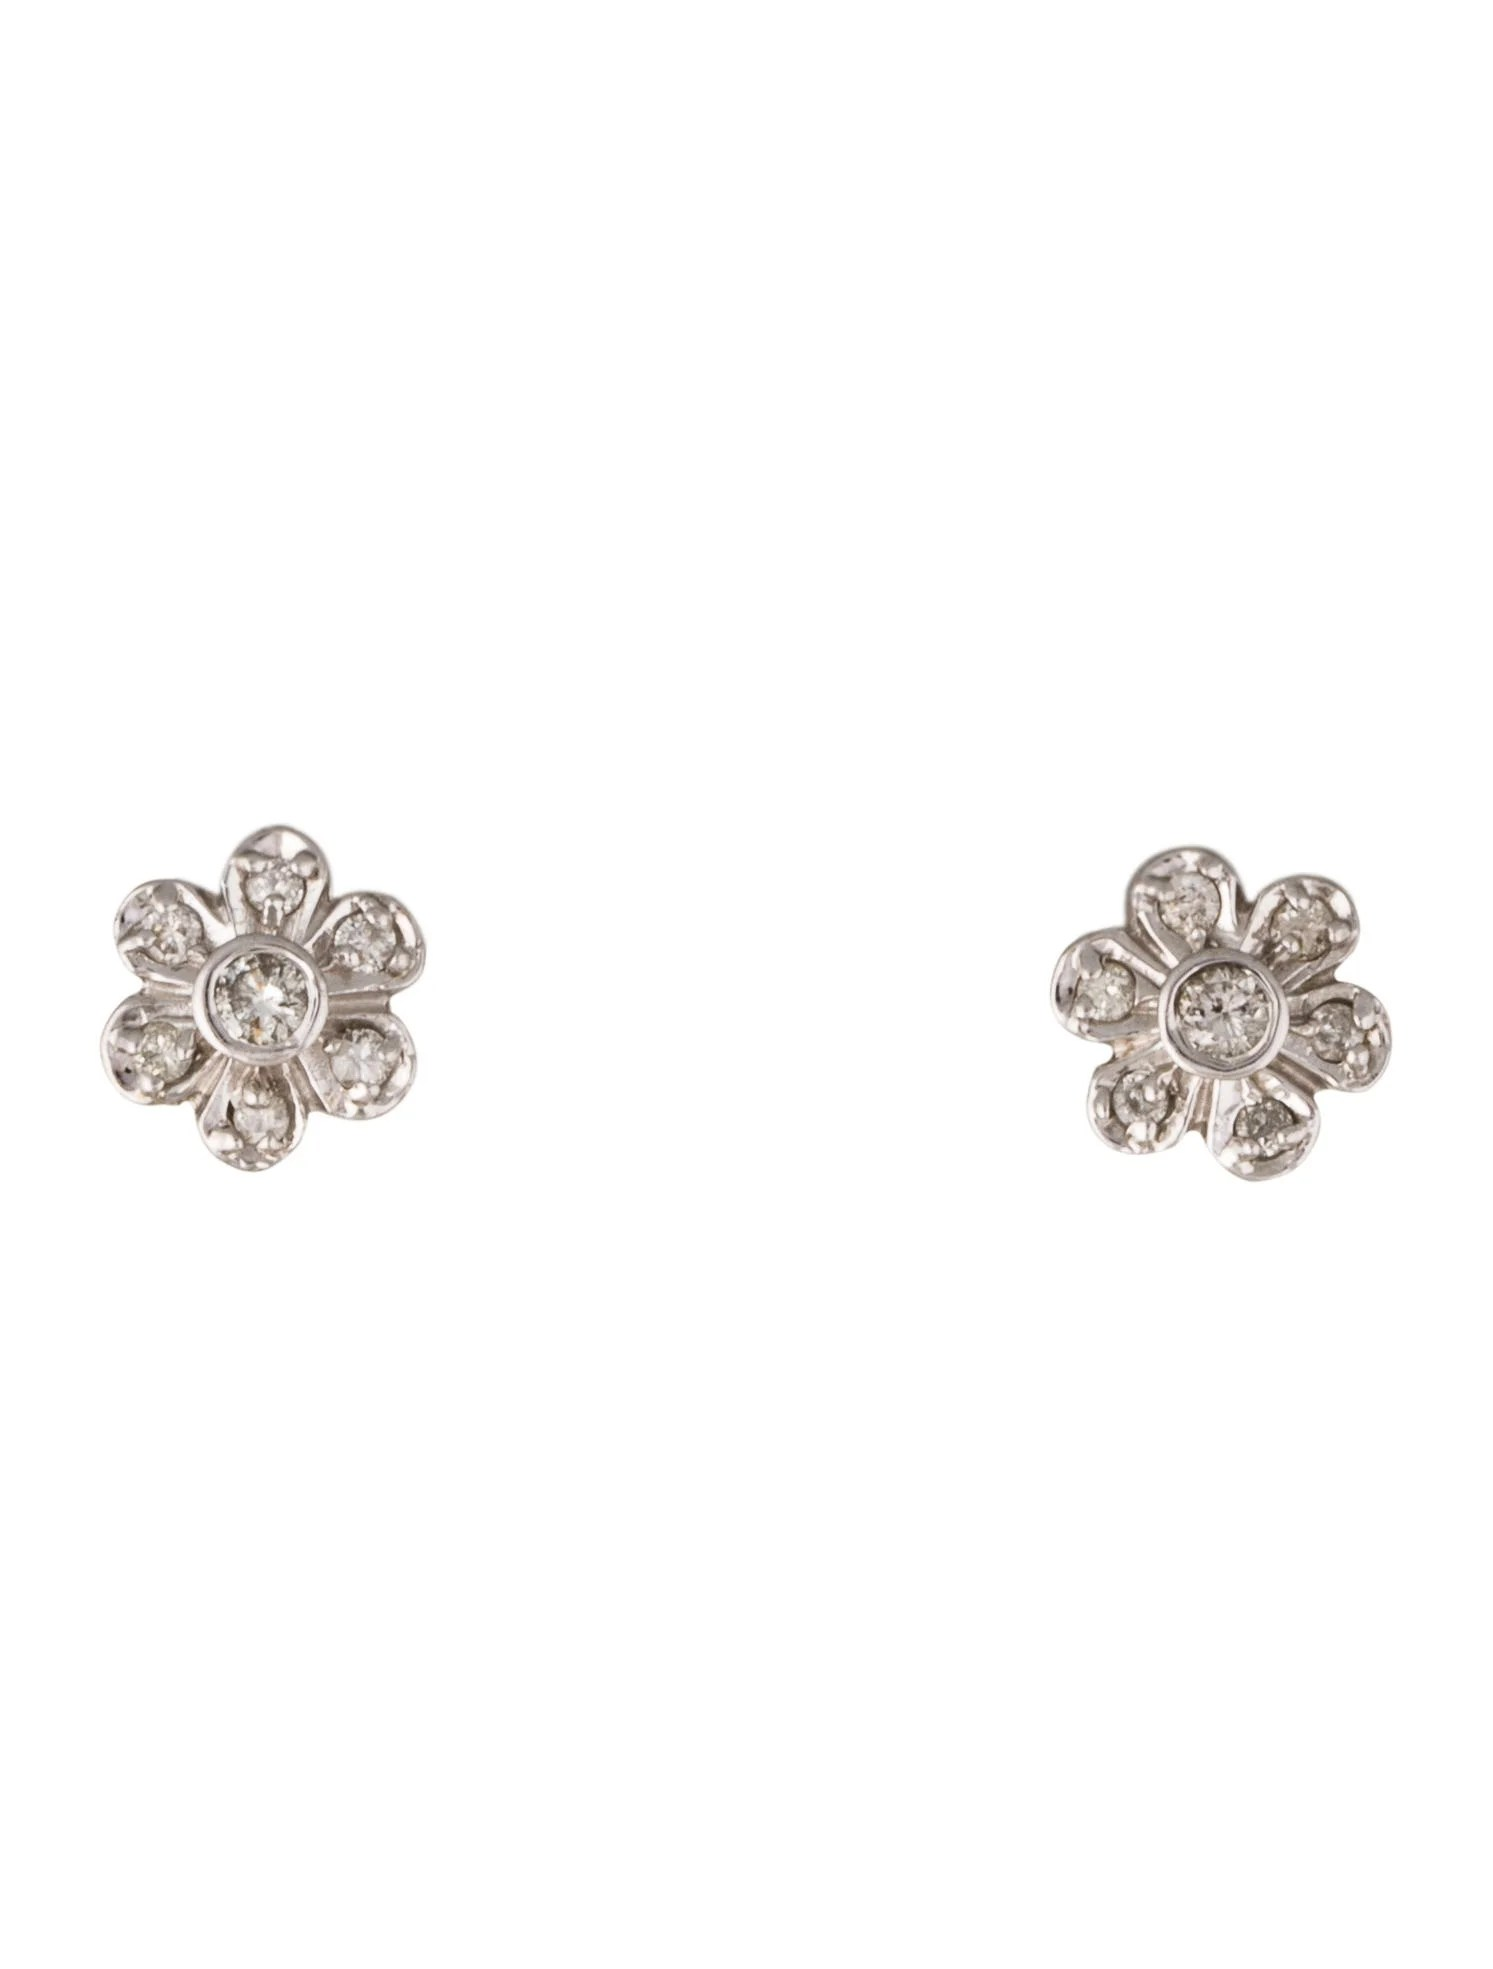 14K Diamond Flower Stud Earrings Earrings EARRI37389